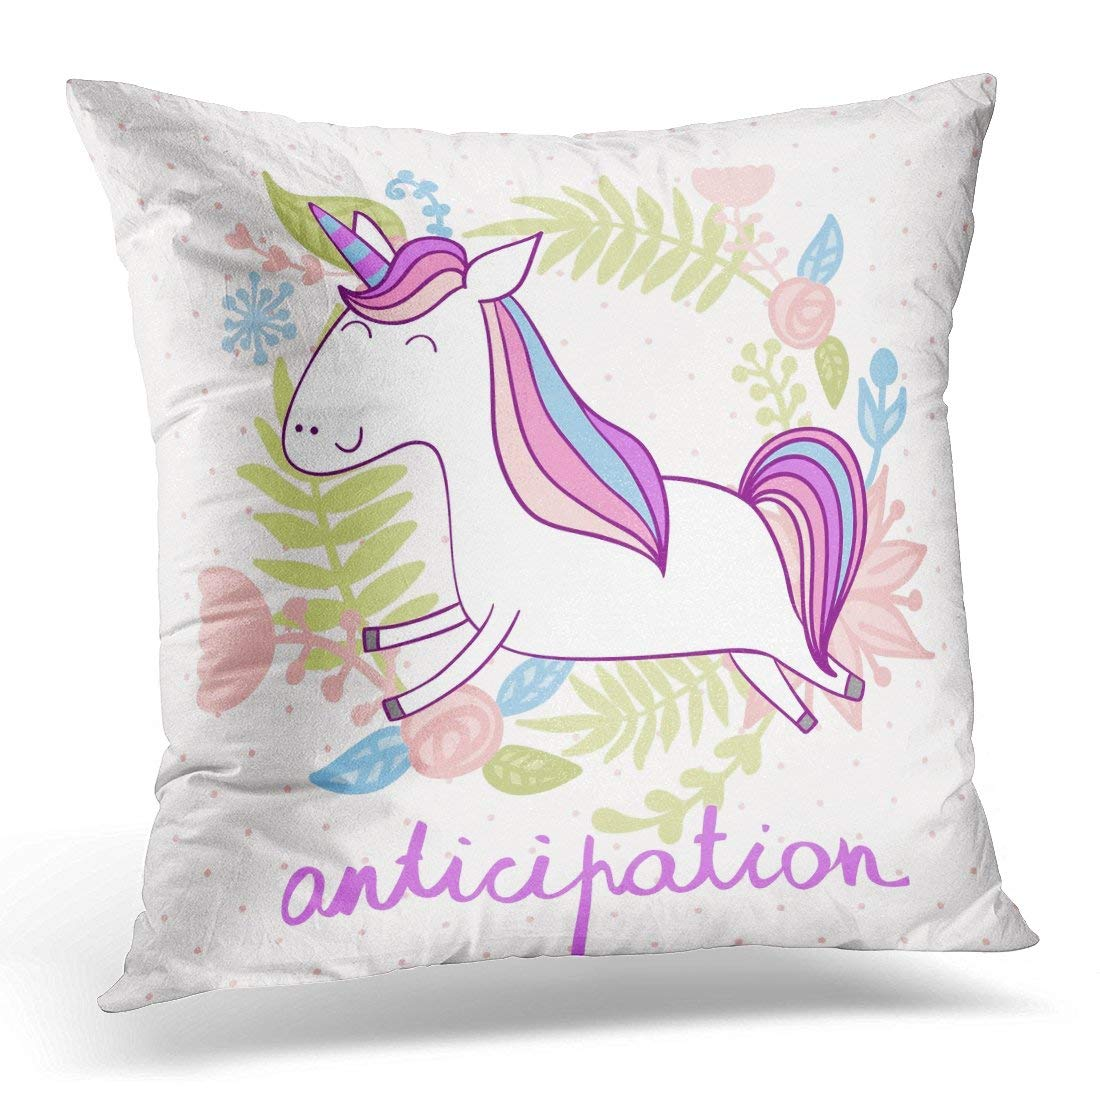 CMFUN Pink Animal Magic Cute Unicorn with Flowers White Anticipation Pillow Case Pillow Cover 20x20 inch